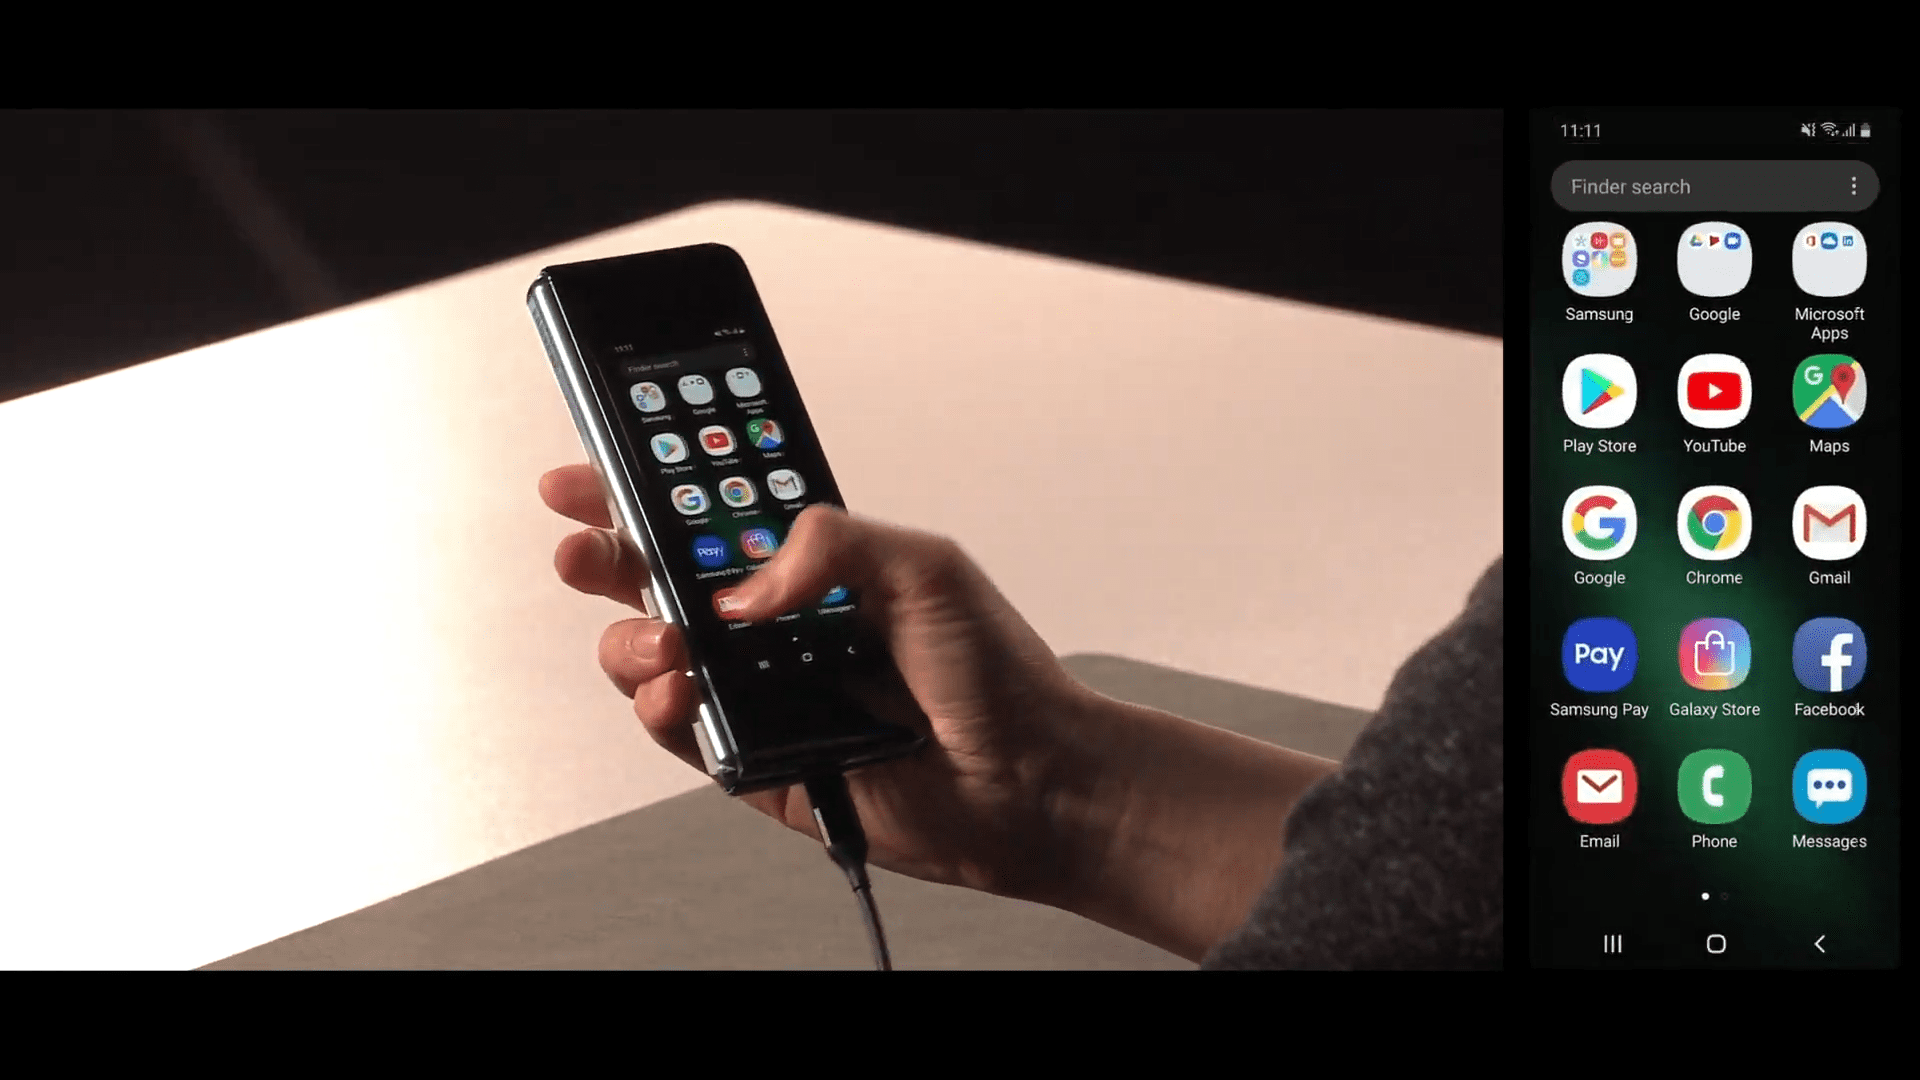 Samsung Galaxy Fold Phone Announced: Specs, Price and Release